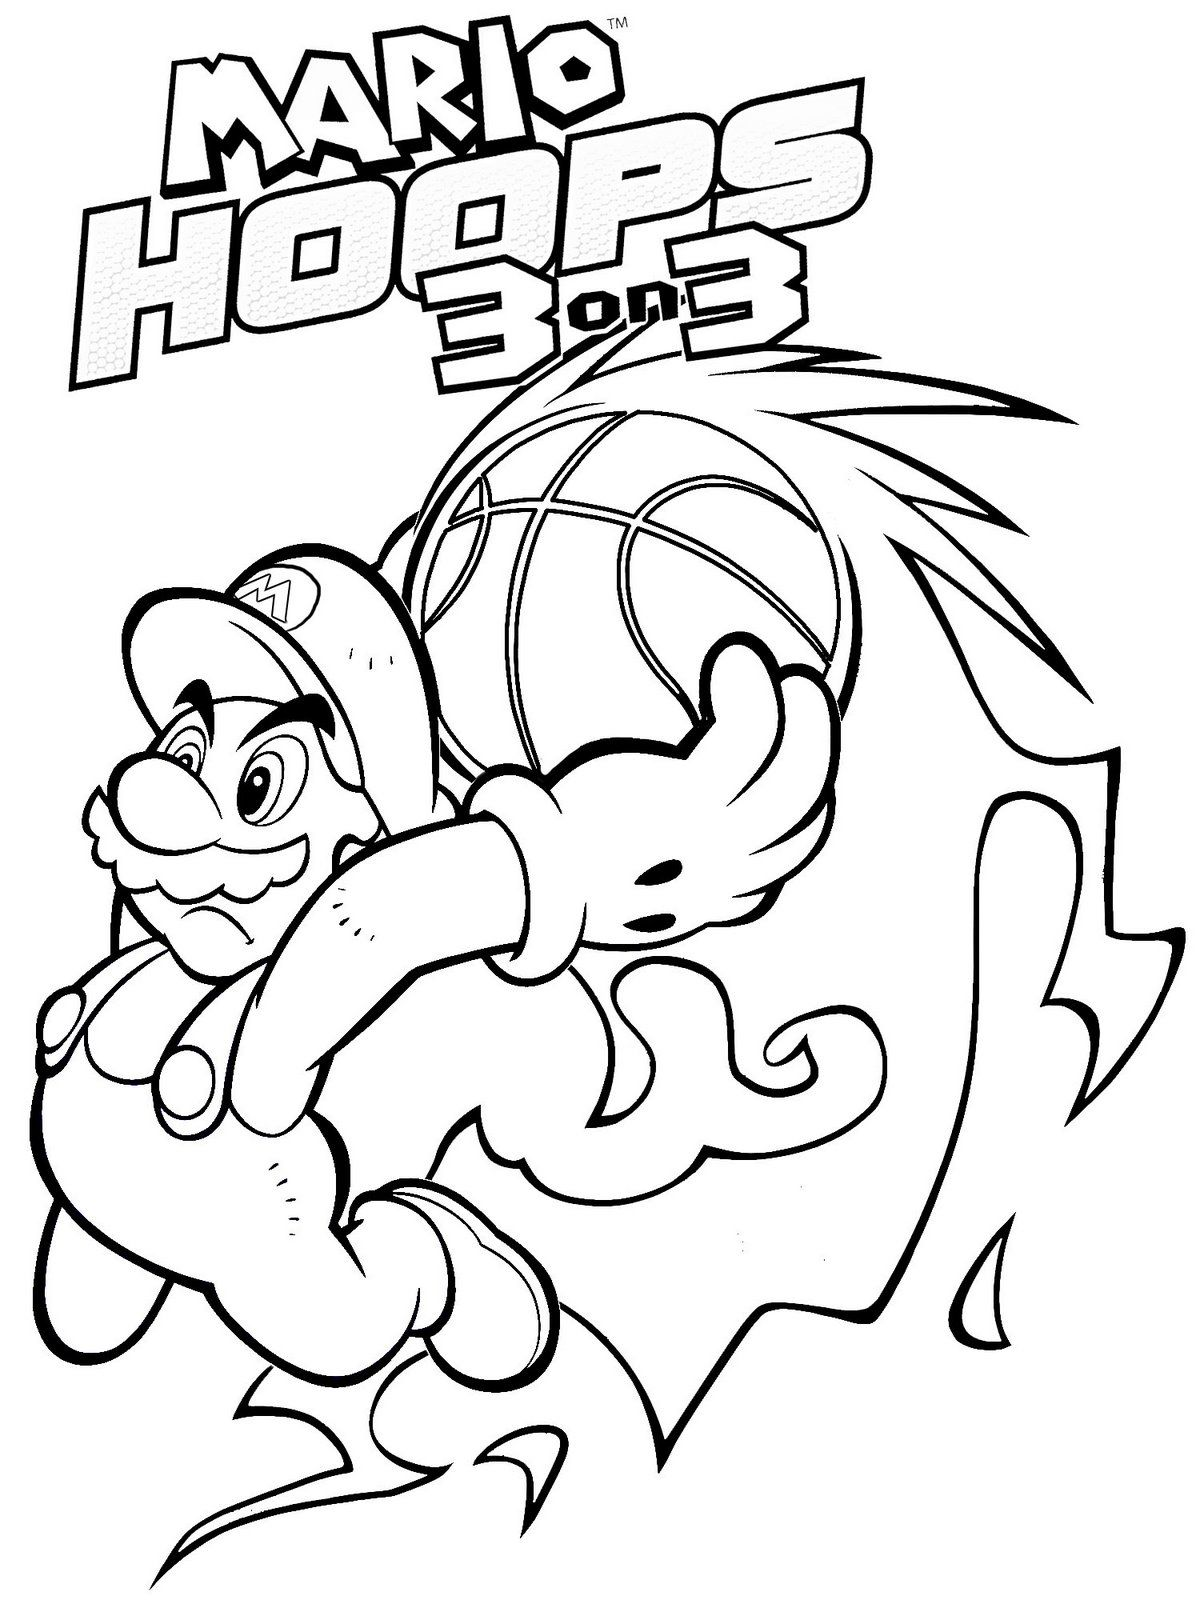 mario coloring pages - Mario Coloring Page